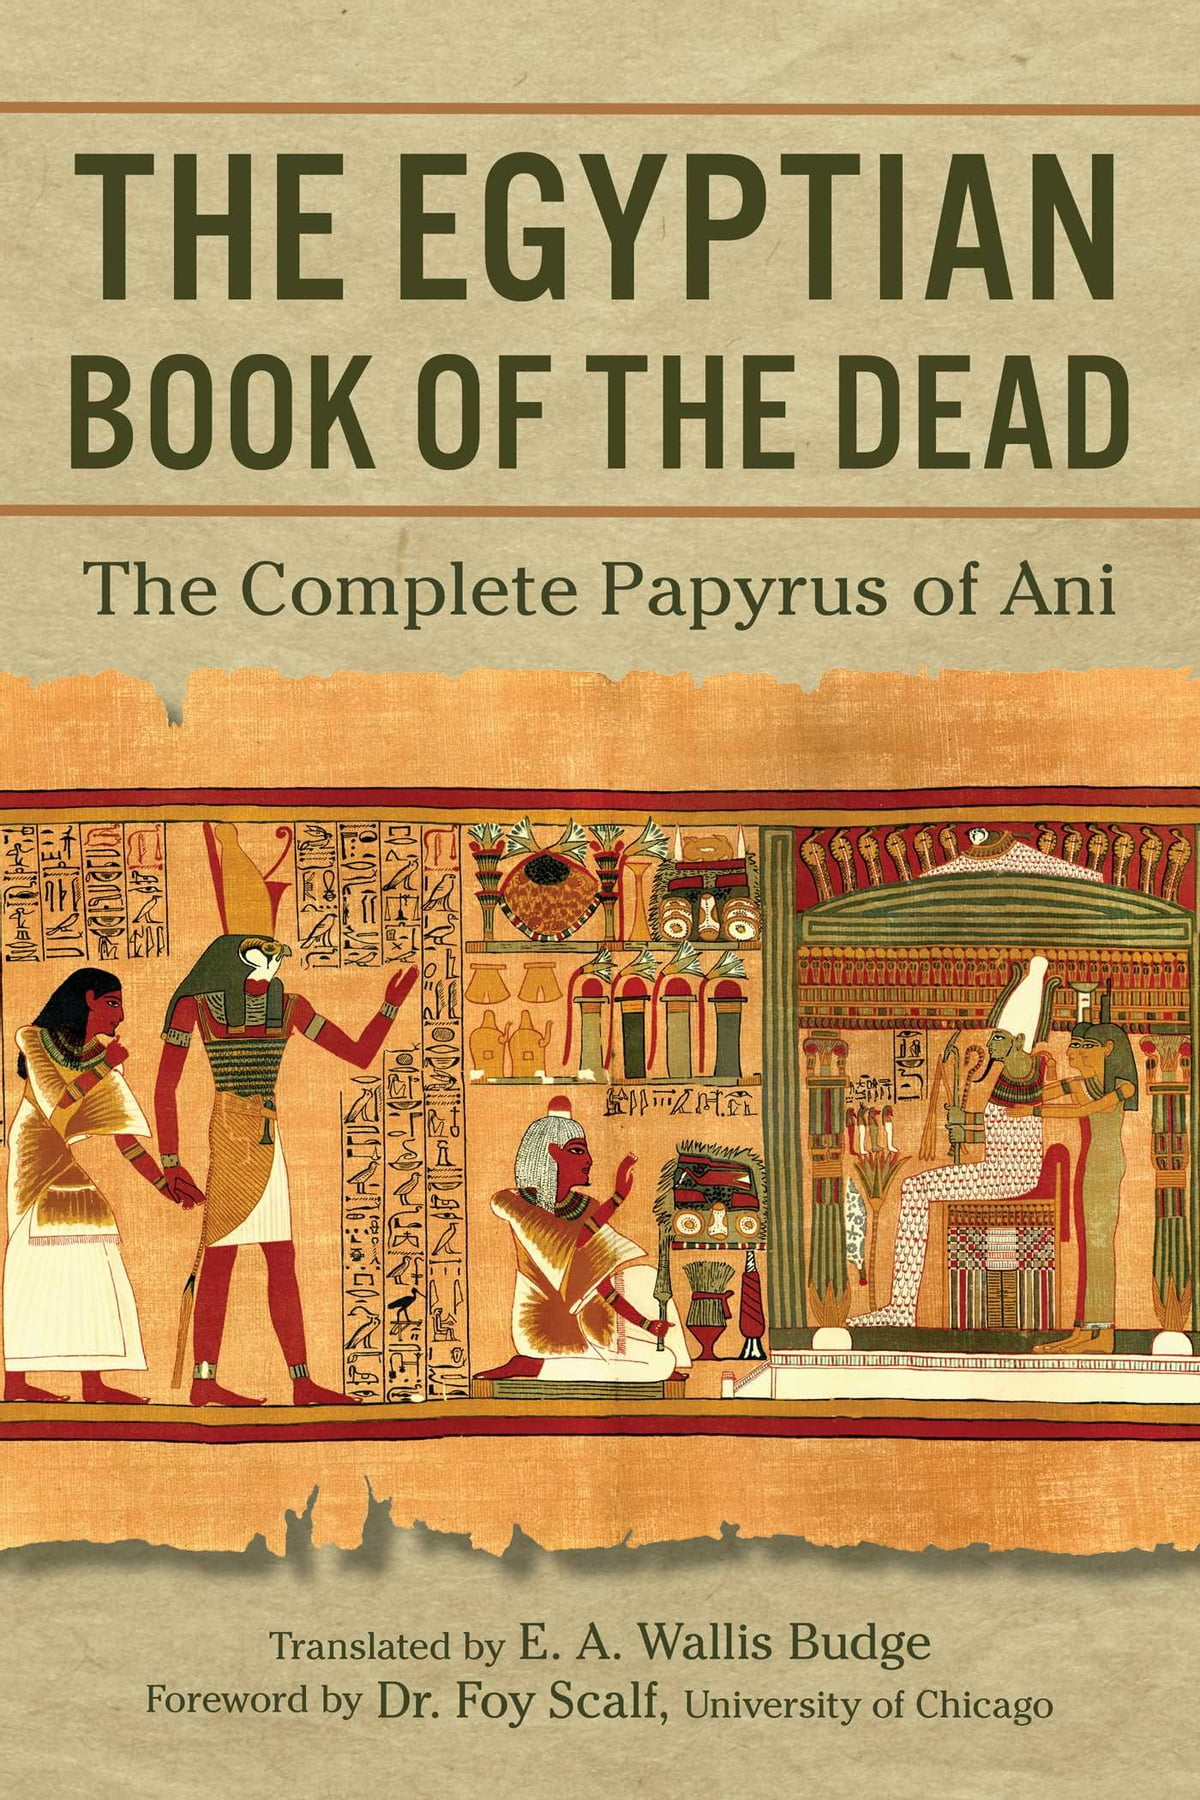 The Egyptian Book of the Dead eBook by E.A. Wallis Budge ...